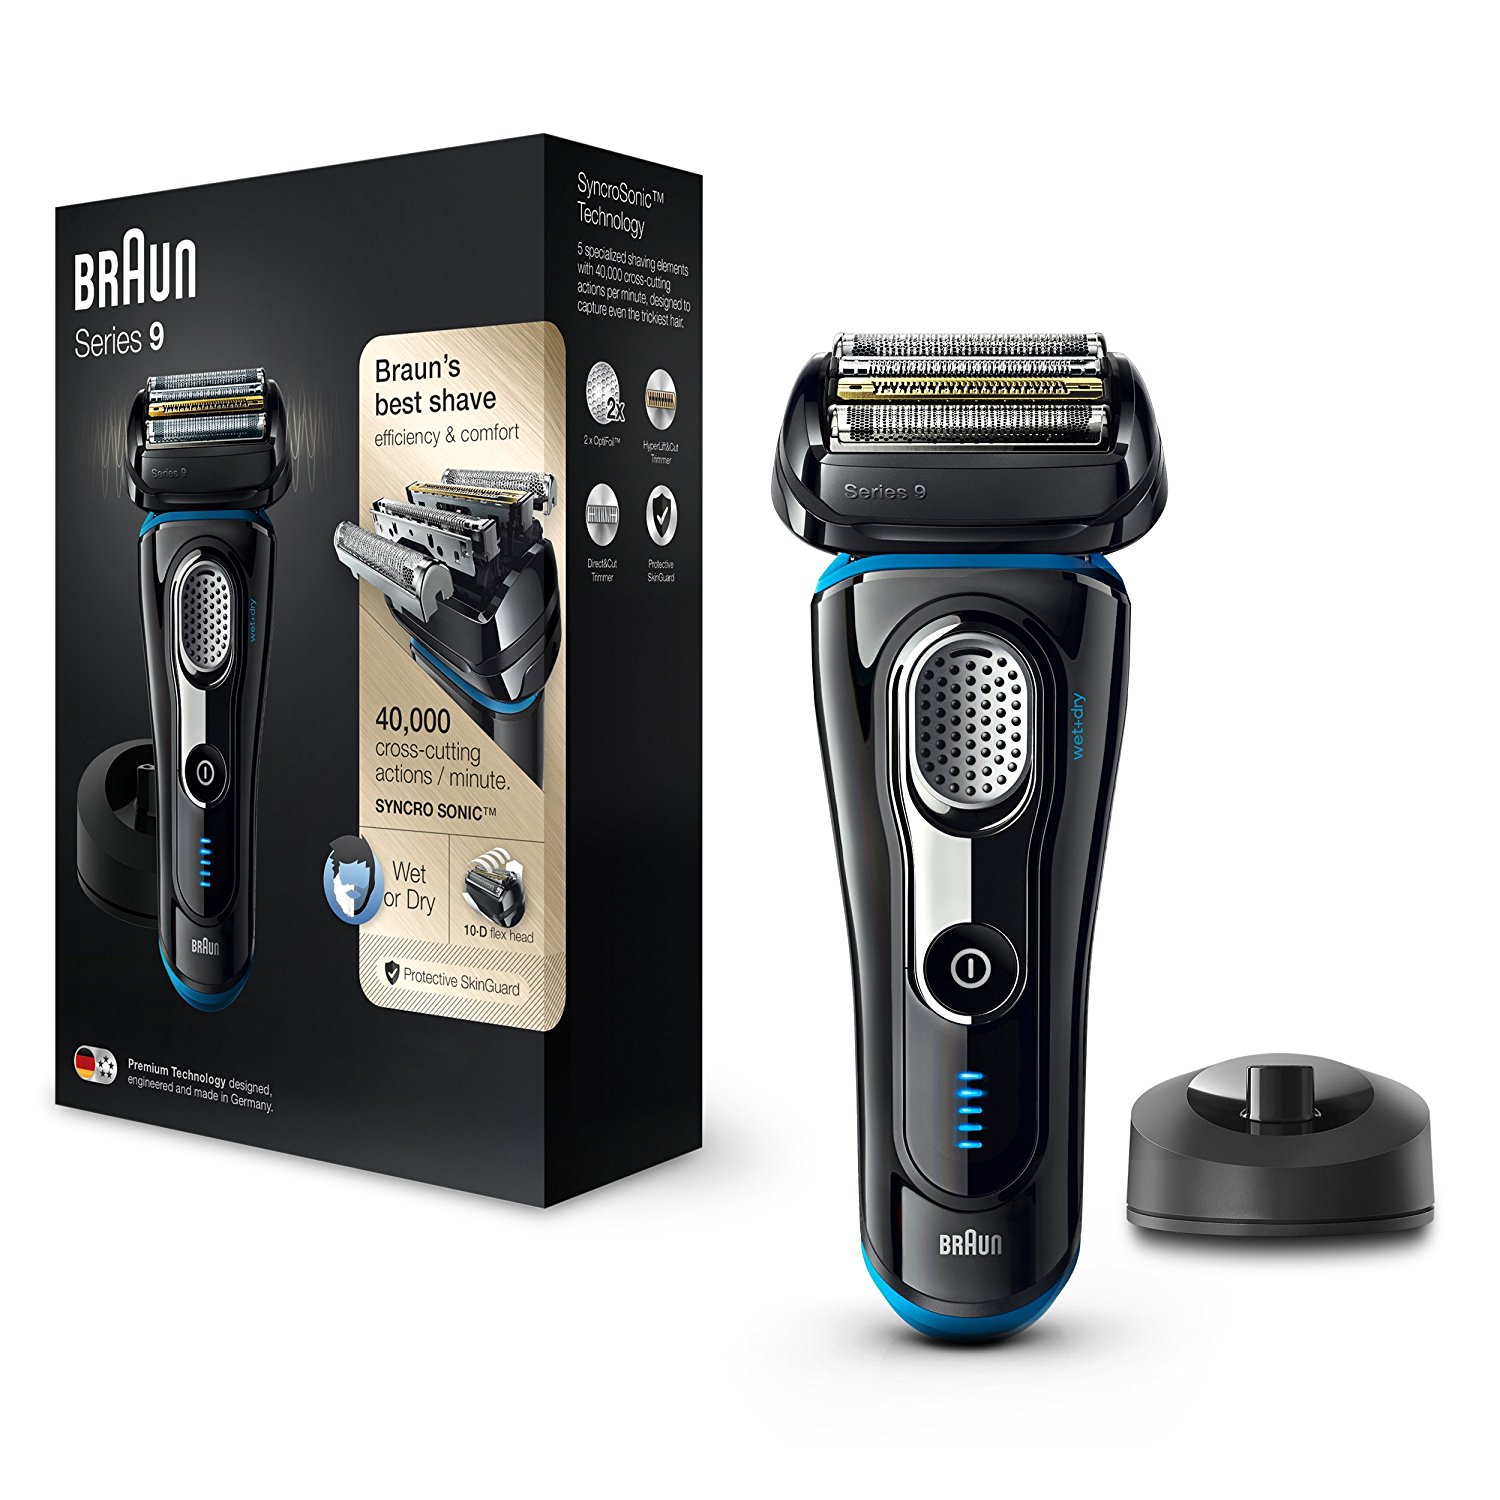 Braun Series 9 9240s Men's Electric Rechargeable Foil Shaver|Wet&Dry|Black/Blue